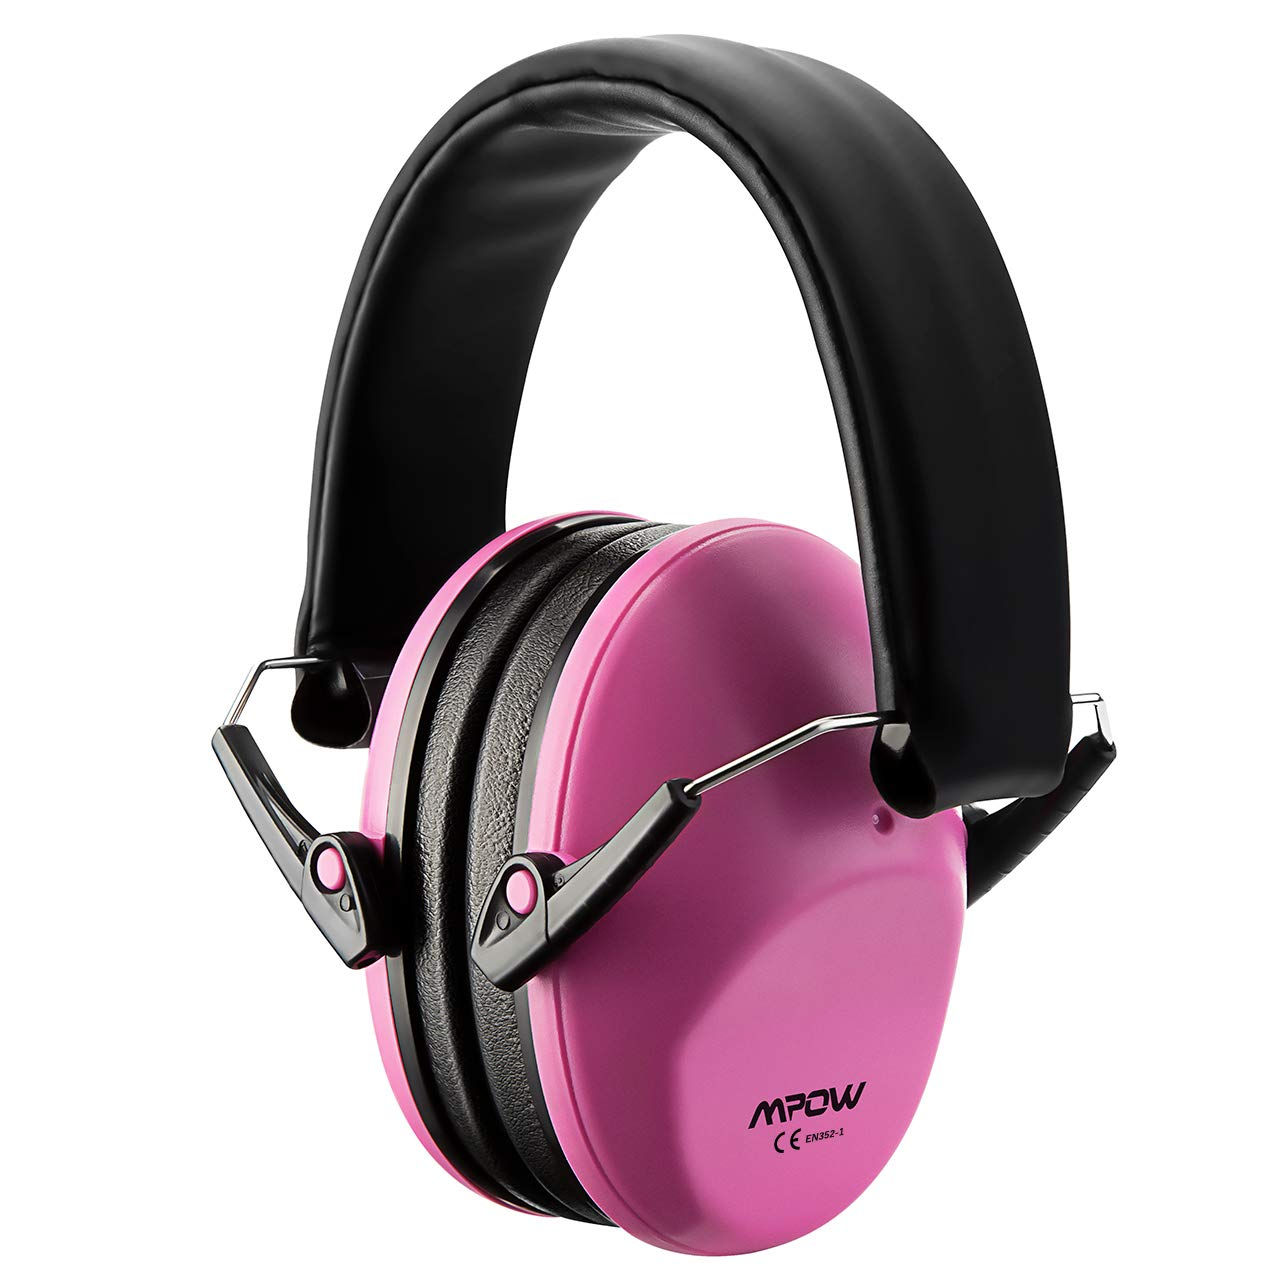 Mpow 068 Kids Ear Protection, NRR 25dB Noise Reduction Ear Muffs, Toddler Ear Protection, Protective Earmuffs for Shooting Range Hunting Season, for Toddlers Kids Children Teens